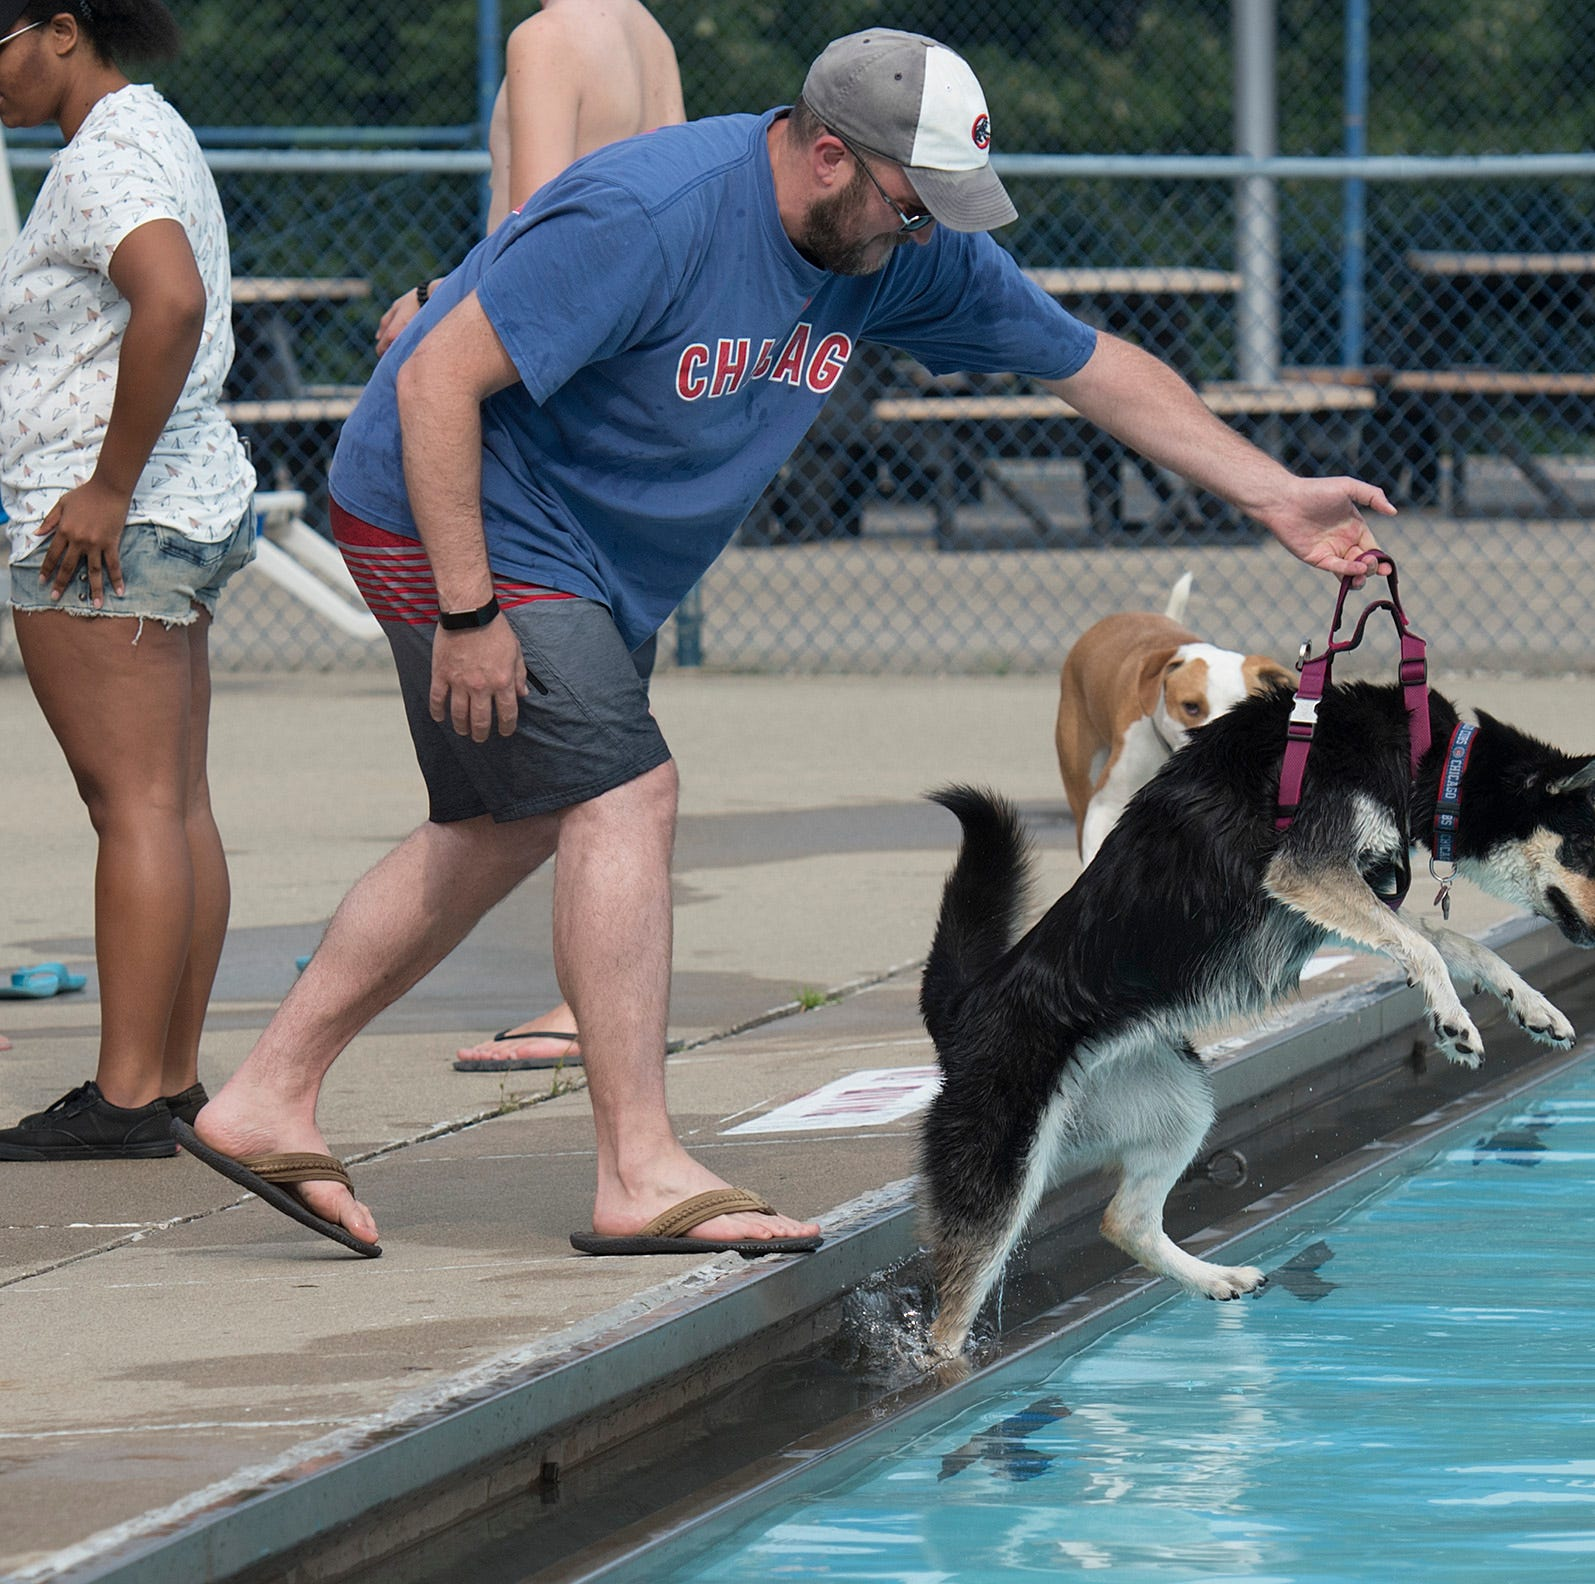 To the dogs! As Livonia city pools close for humans, they open for pooches